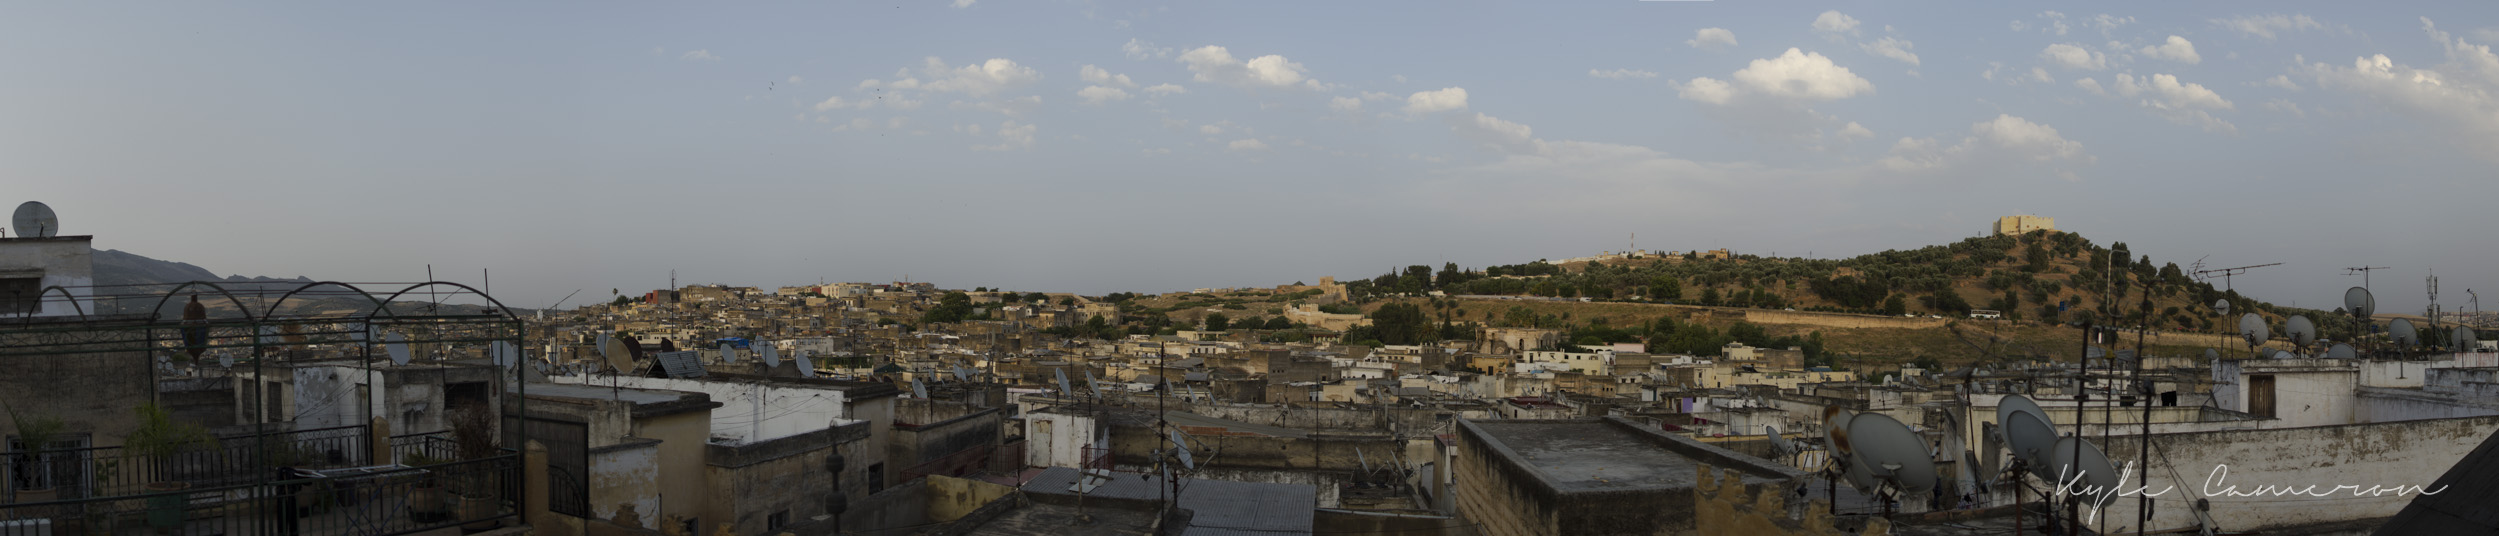 From the roof of  our hostel in Fes.